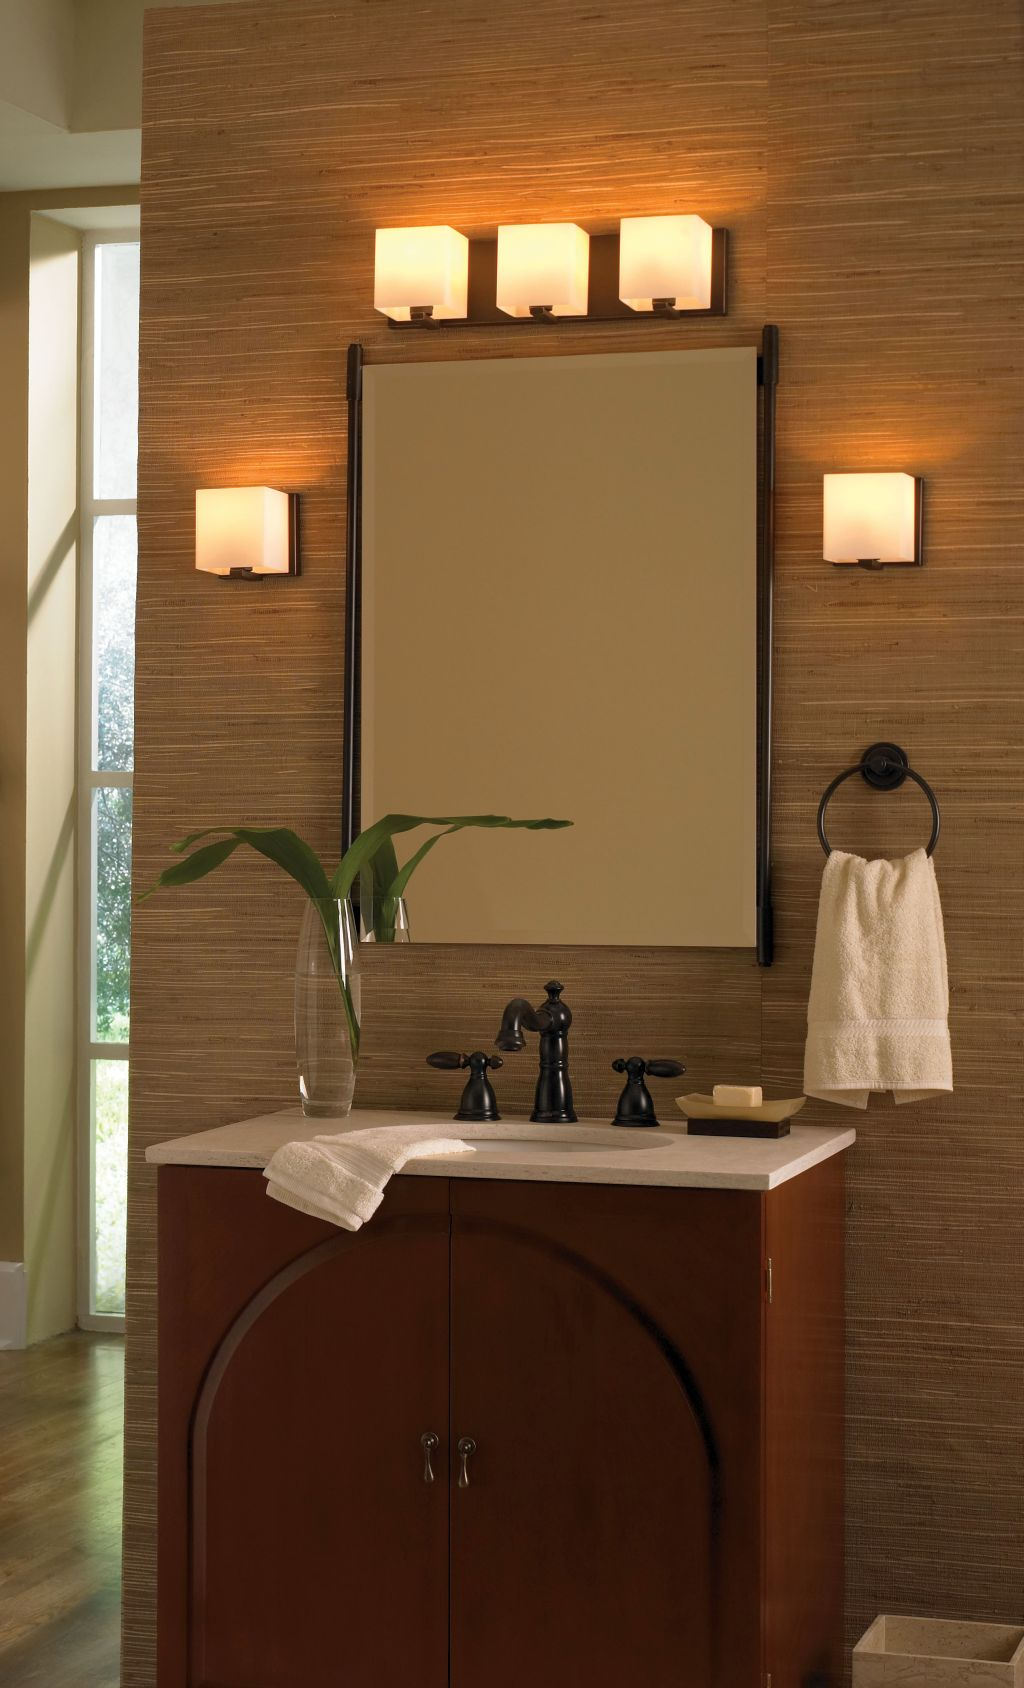 bathroom vanity lighting ideas retro bathroom vanity lighting ideas 16161